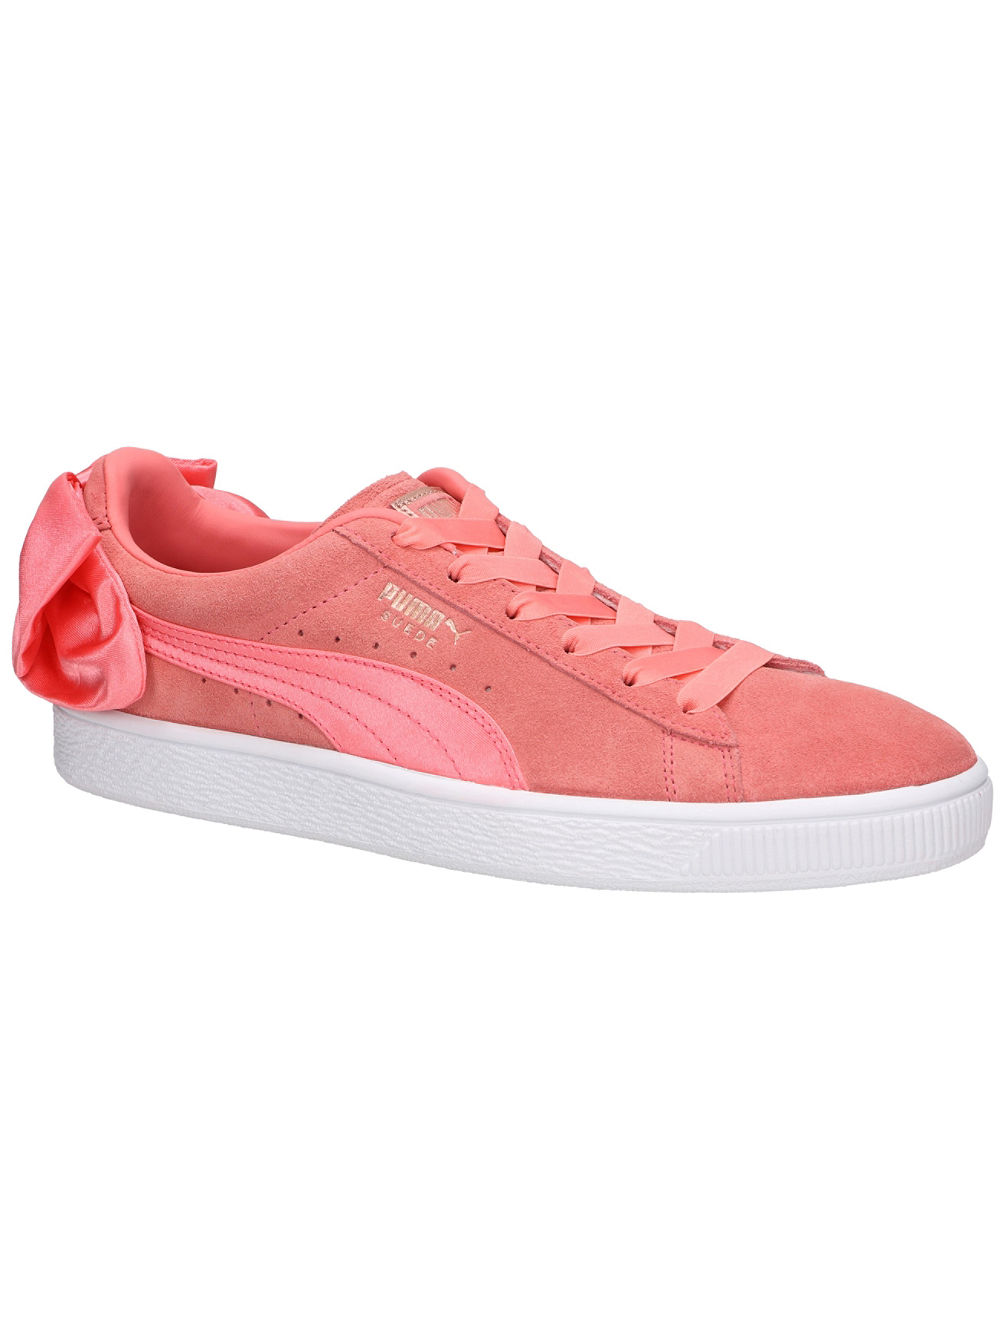 low priced 36d42 67ee1 Suede Bow Sneakers